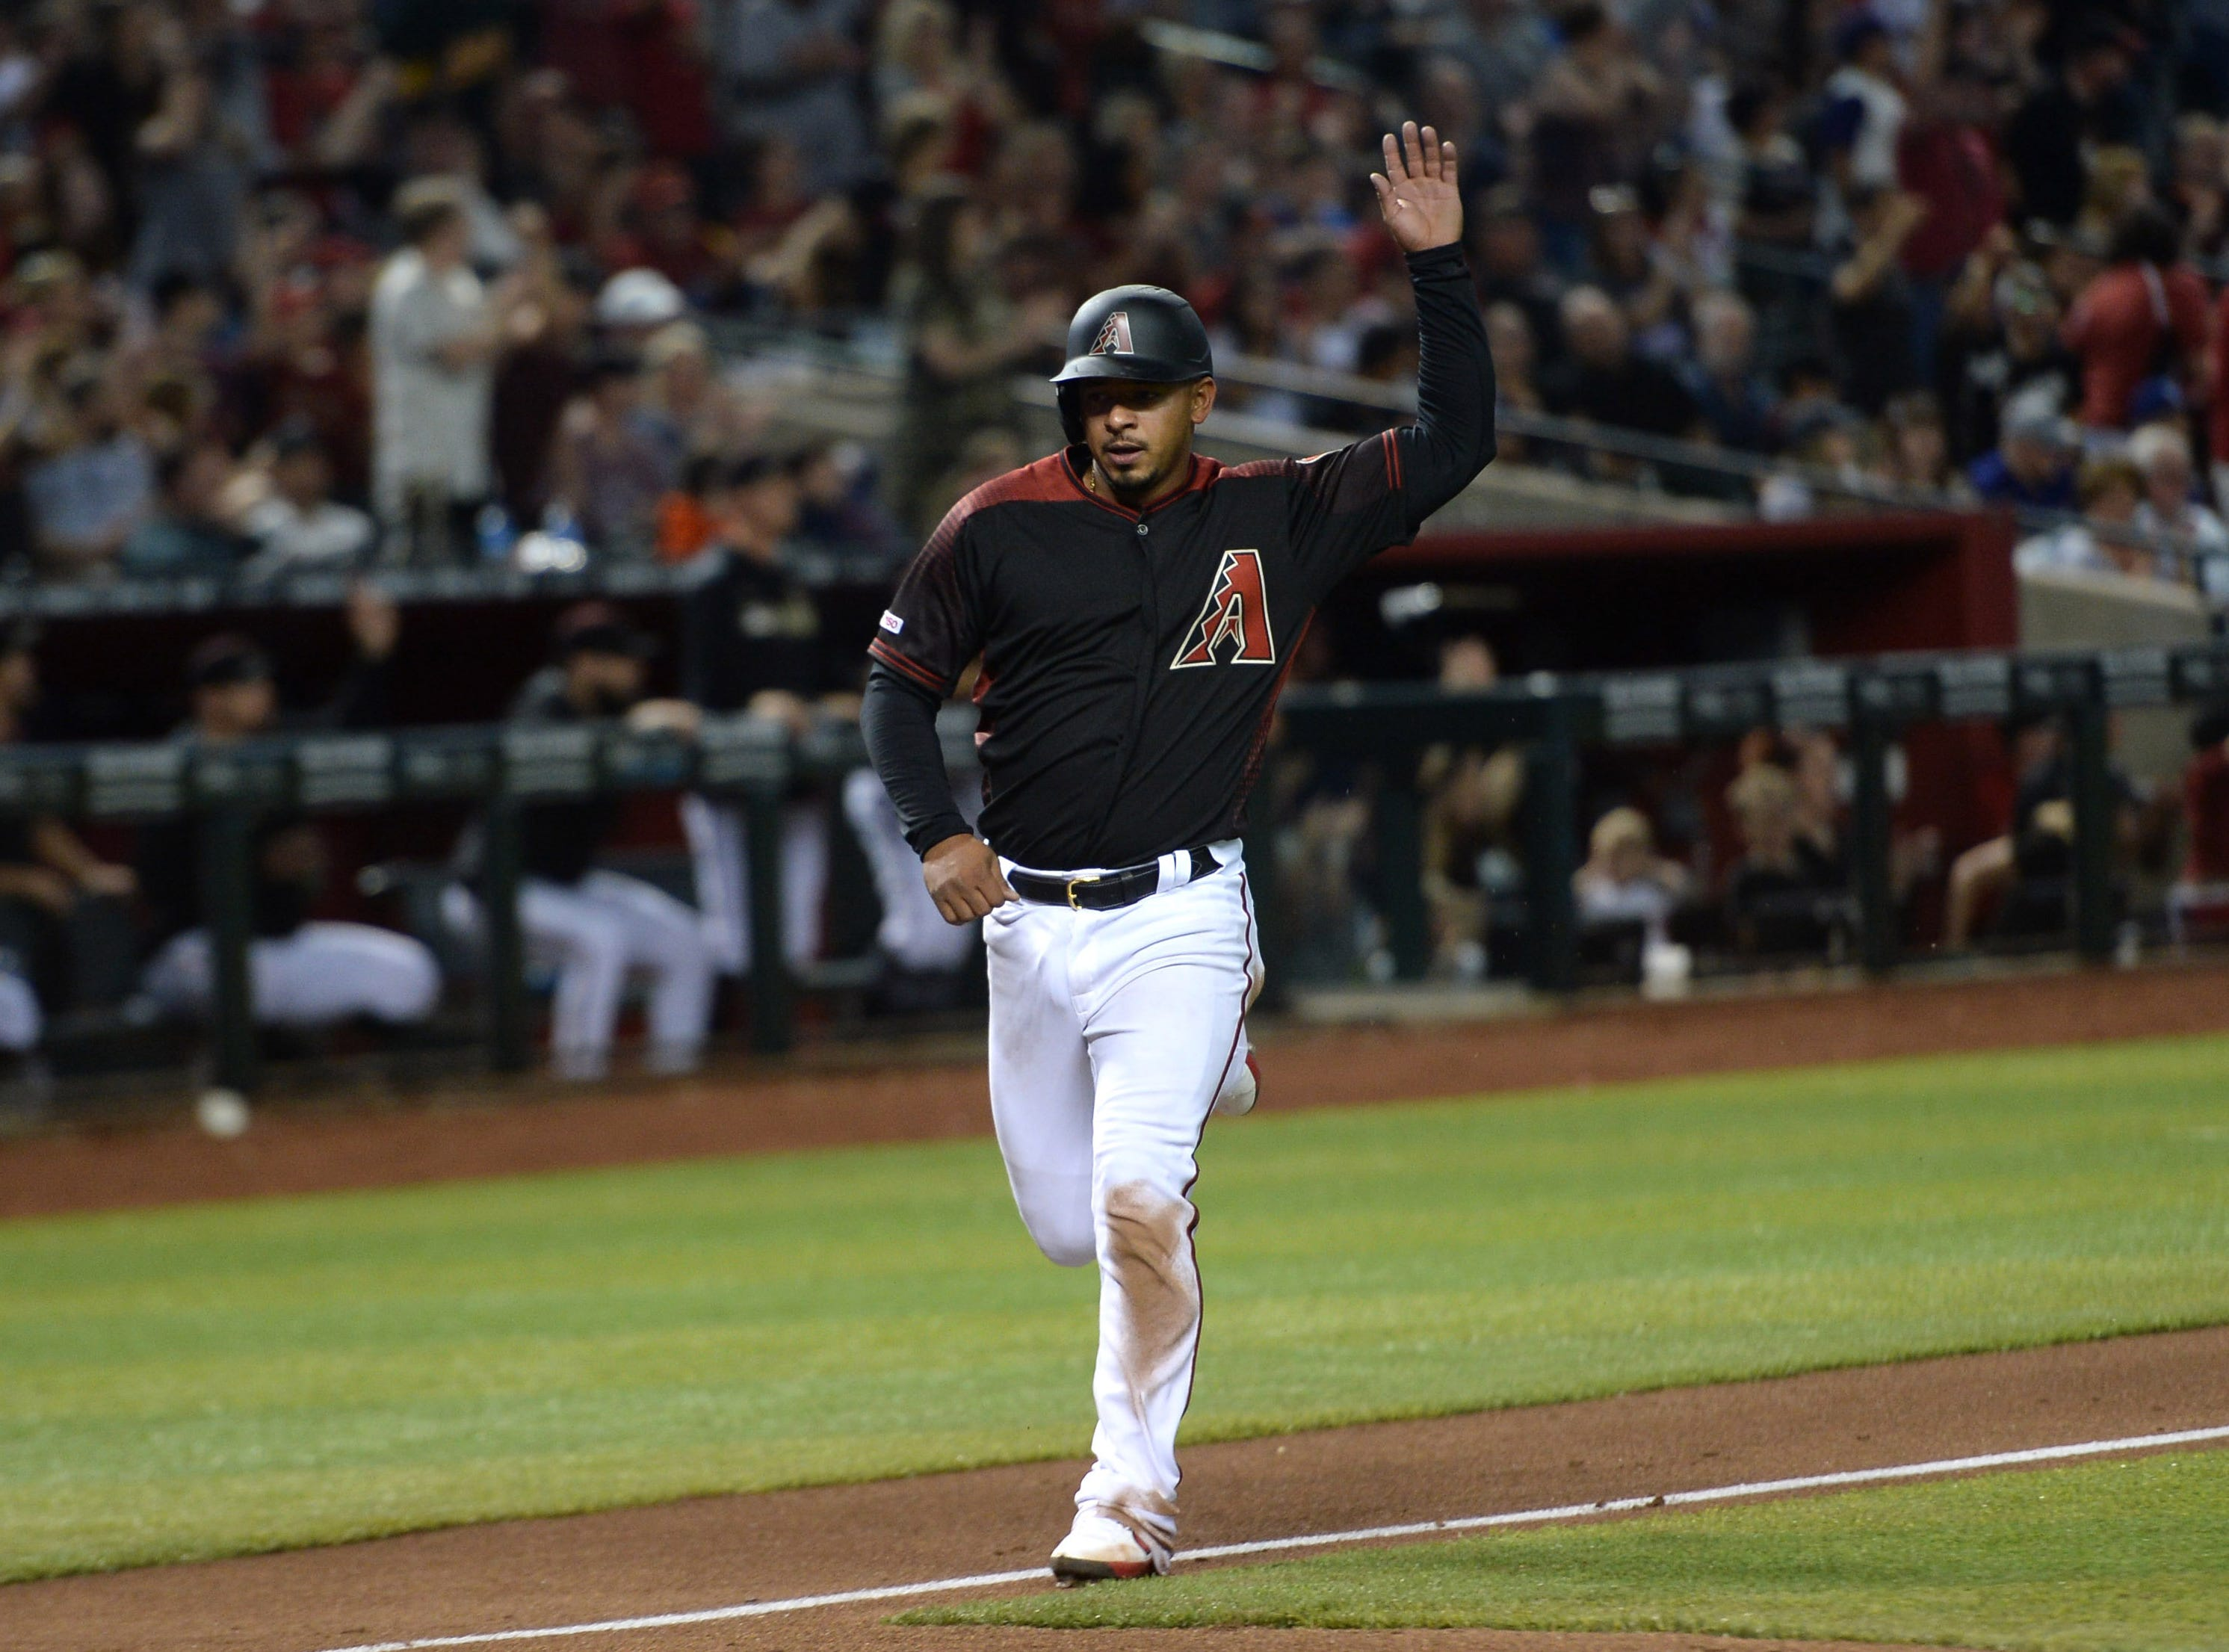 Apr 13, 2019; Phoenix, AZ, USA; Arizona Diamondbacks third baseman Eduardo Escobar (5) scores a run against the San Diego Padres during the sixth inning at Chase Field. Mandatory Credit: Joe Camporeale-USA TODAY Sports